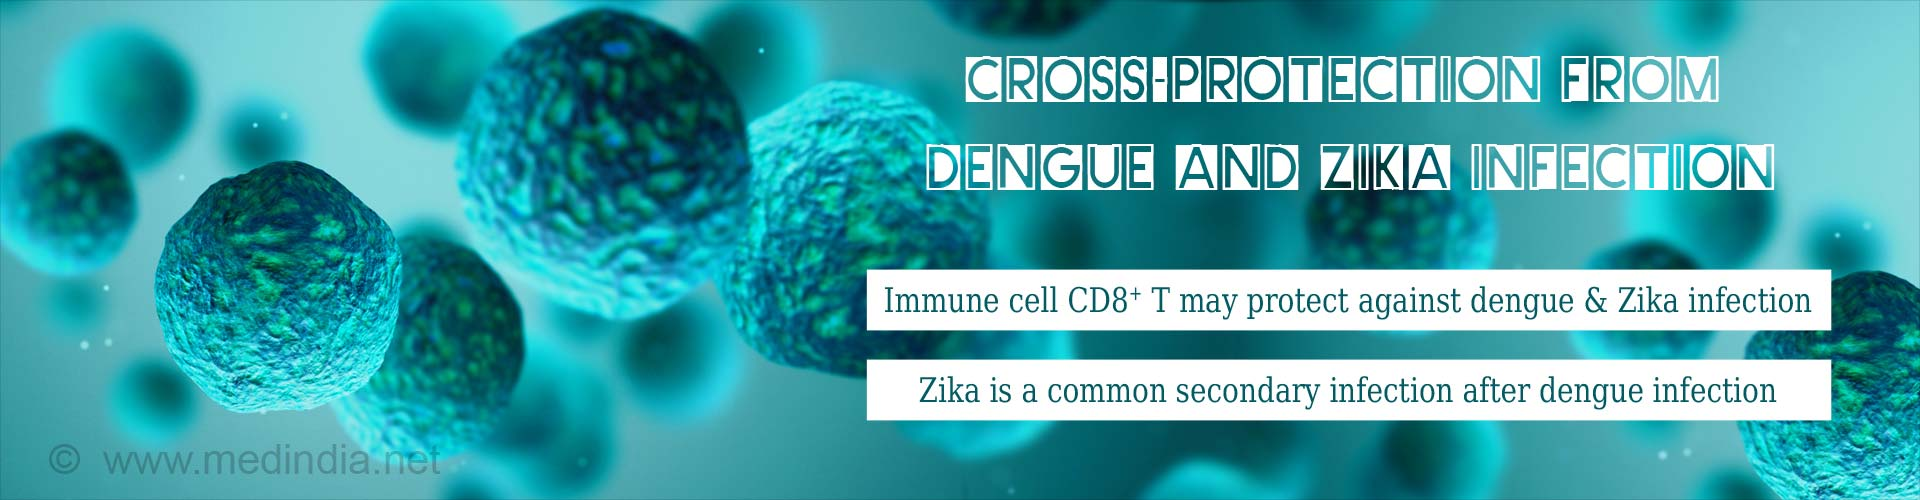 cross-protection from dengue and zika infection